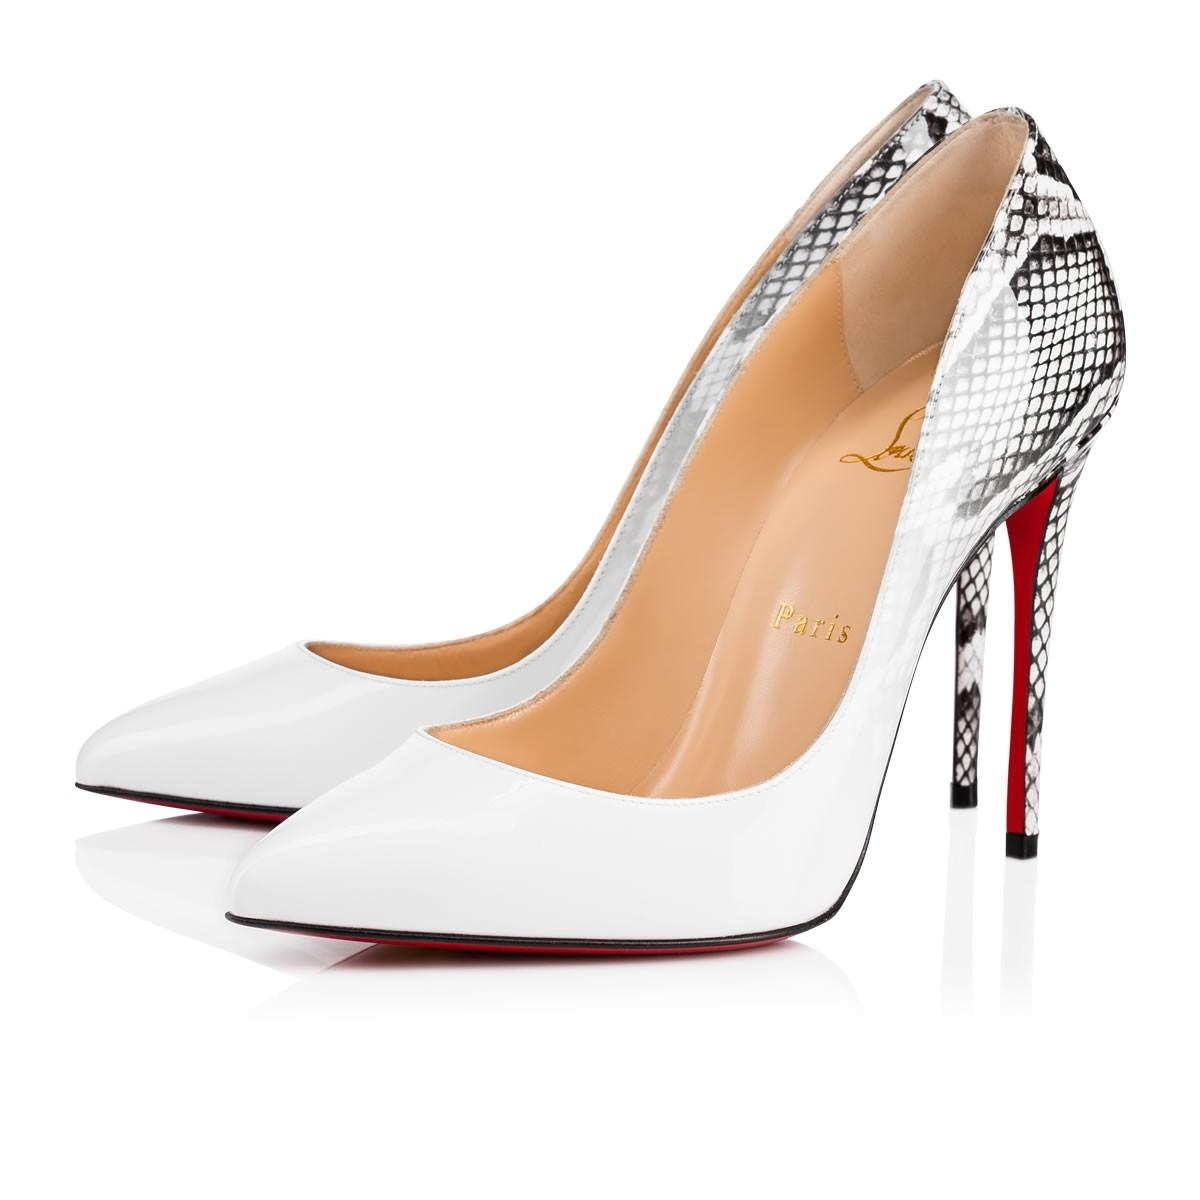 Christian Louboutin Fifi Crystal Encrusted Peep toes Aurora louboutin shoes sale christian louboutin makeup cheap louboutin Best Selling clearance